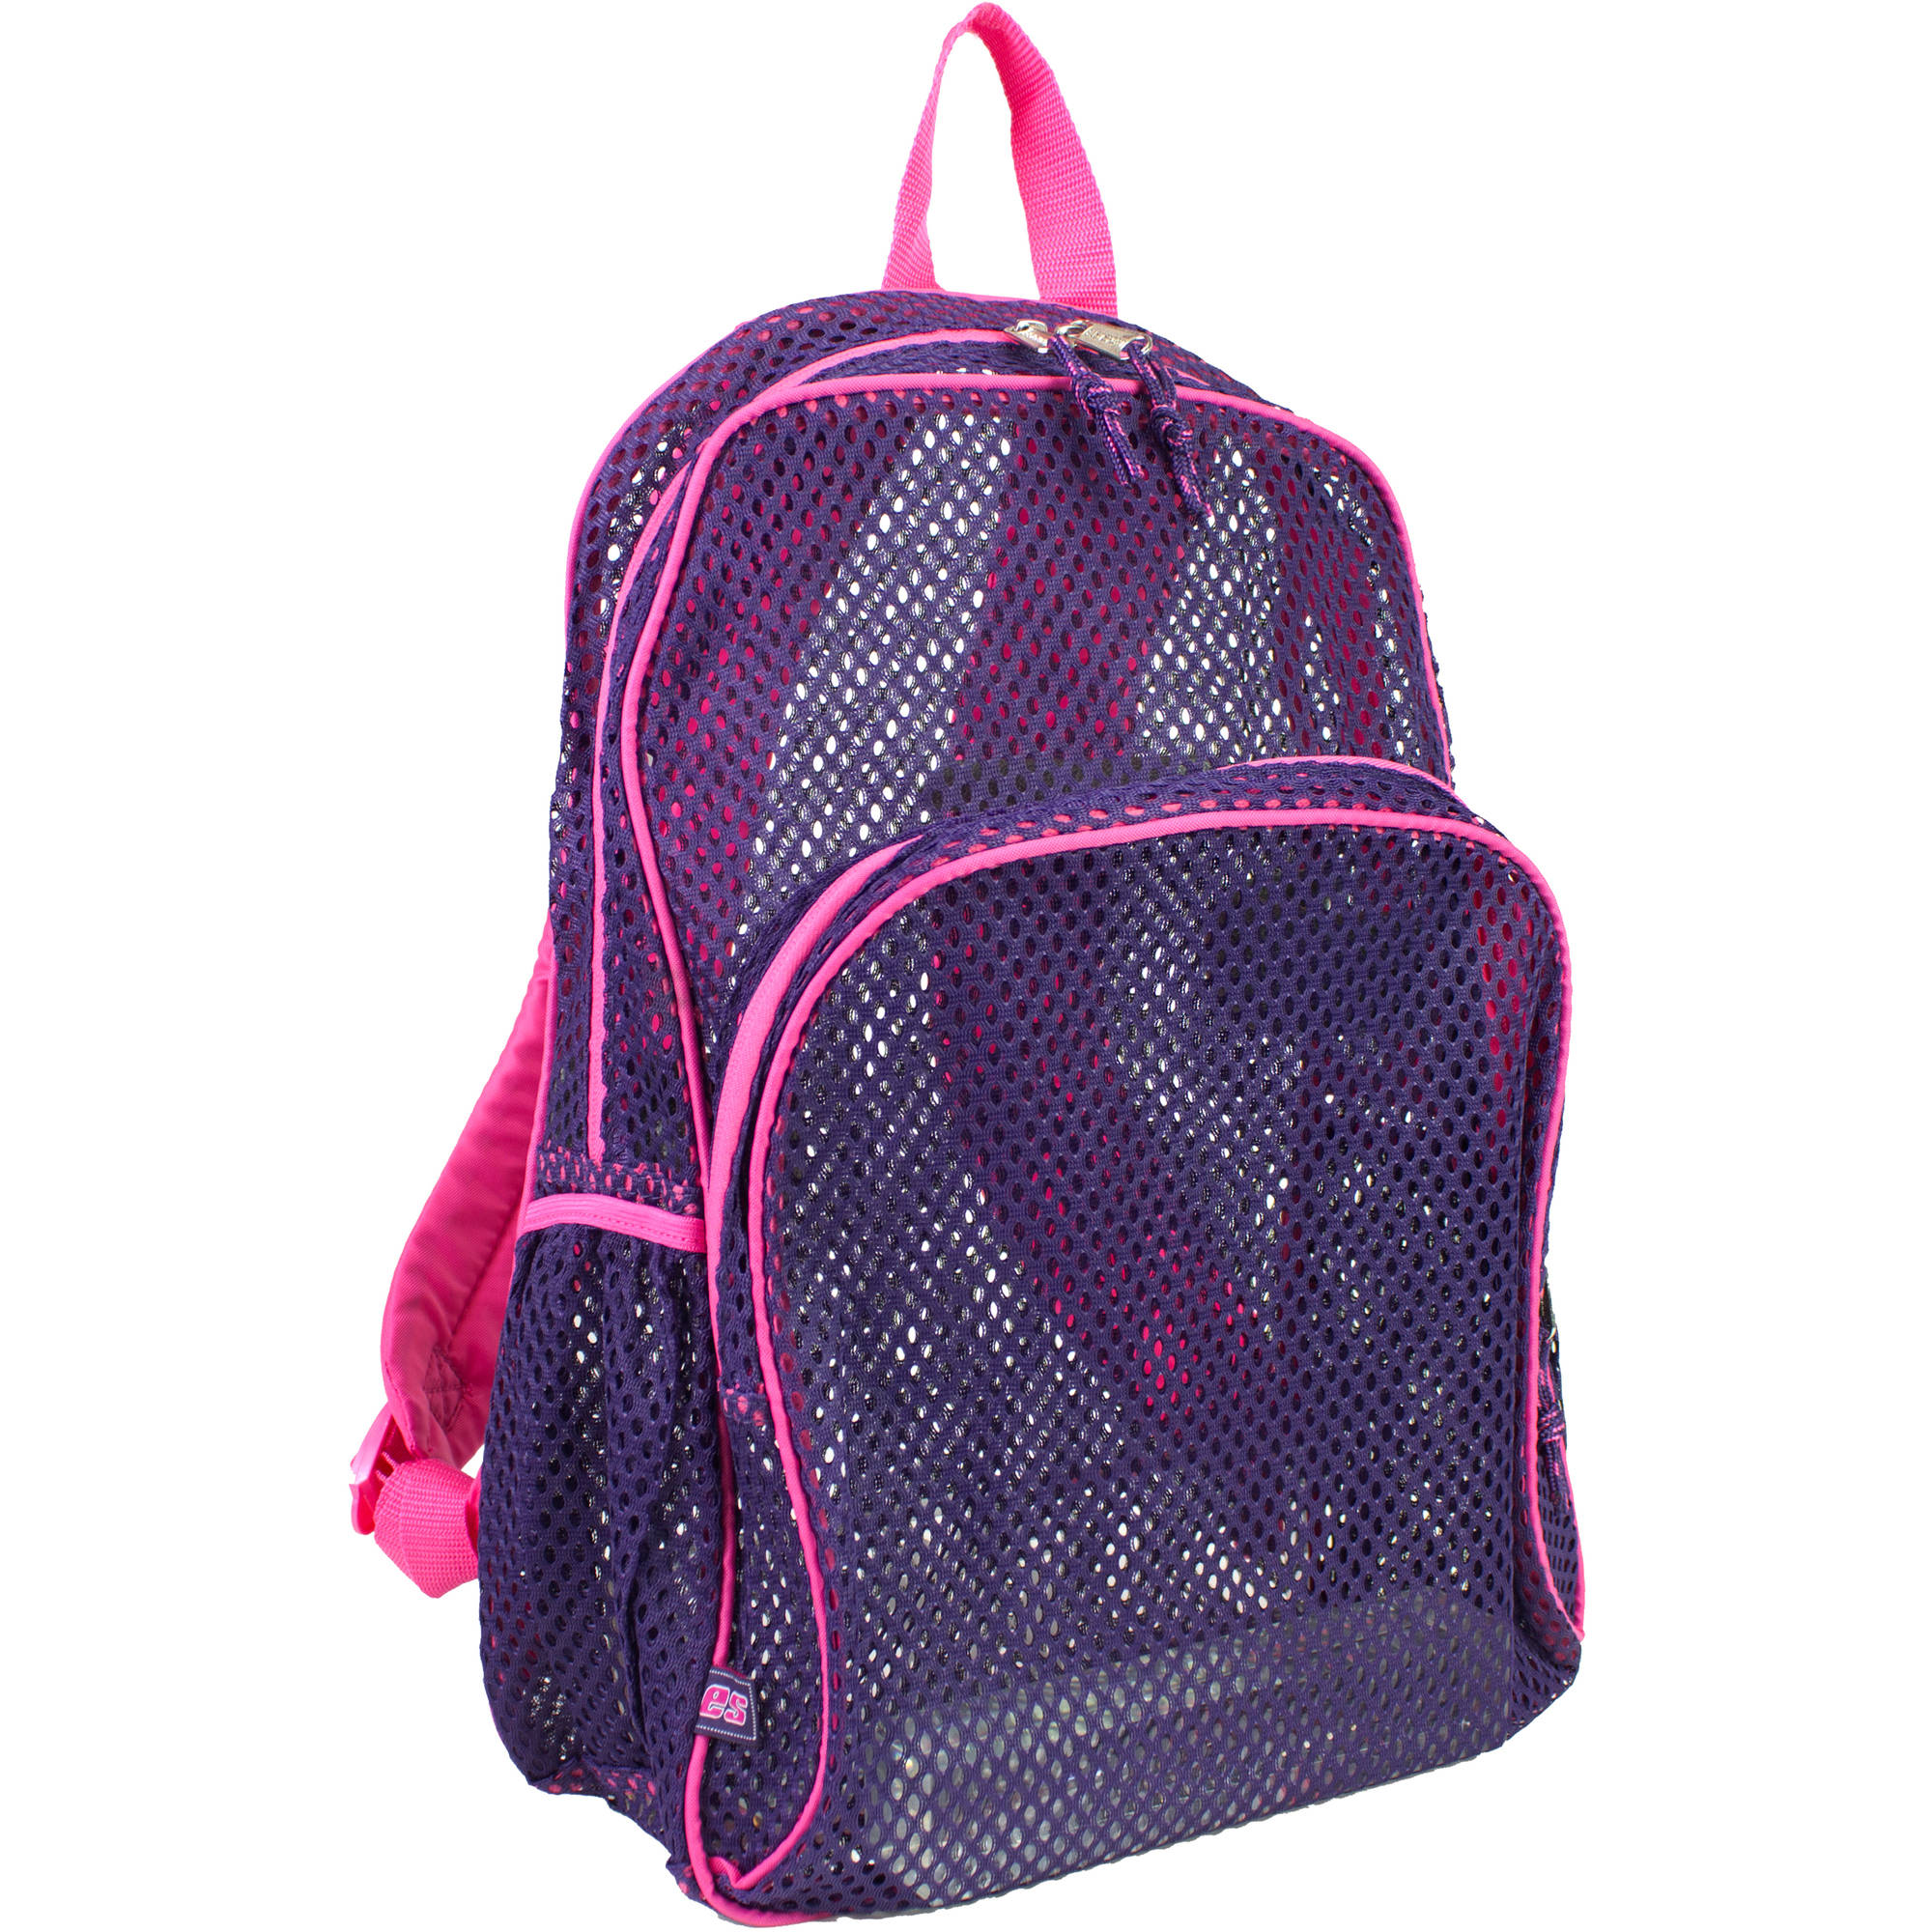 "Eastsport 17.5"" Mesh with Contrast Trim Backpack"